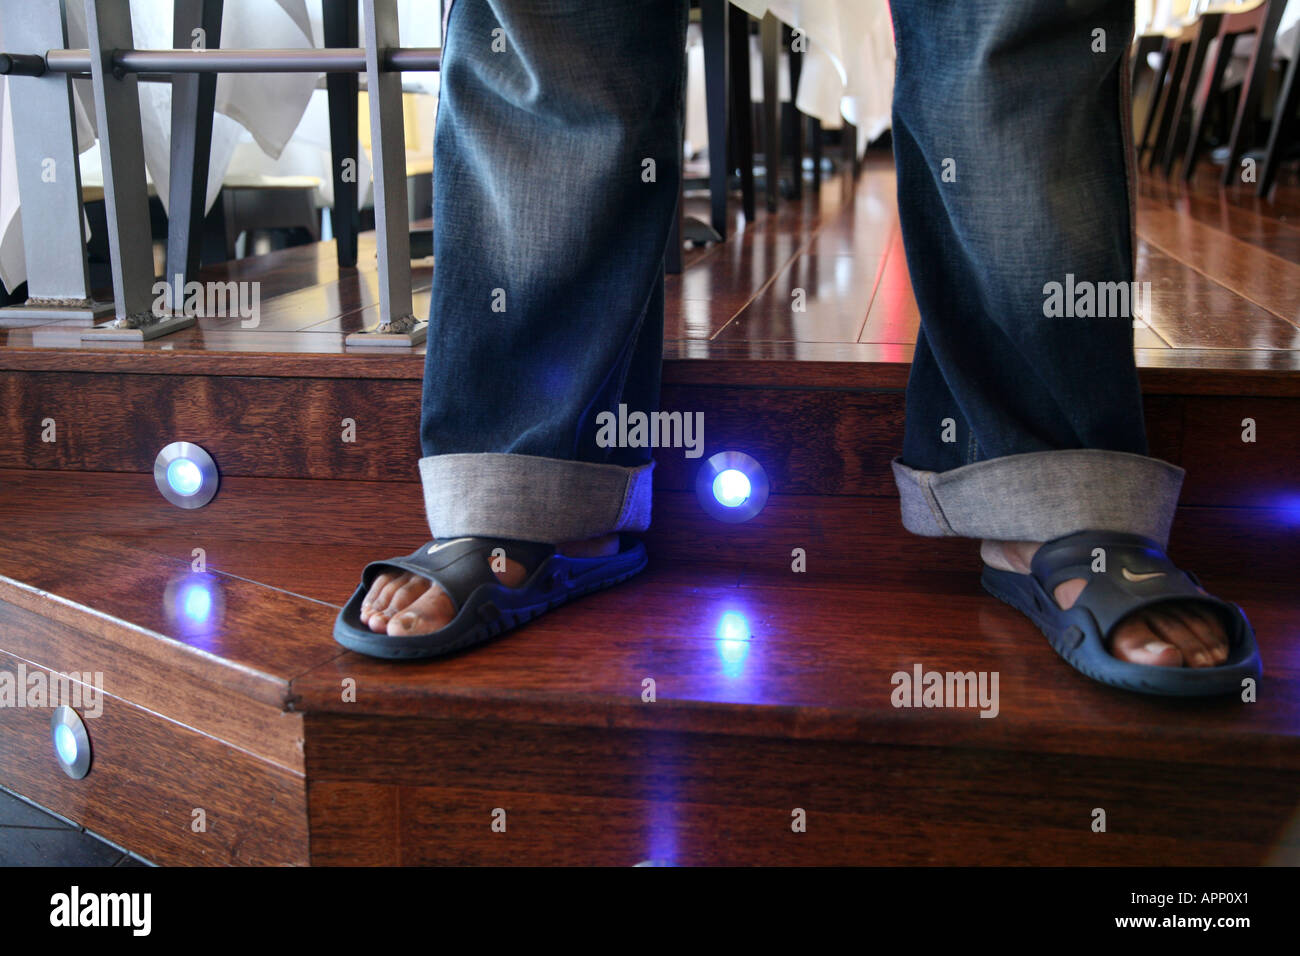 Feet And Sandles Stock Photos Amp Feet And Sandles Stock